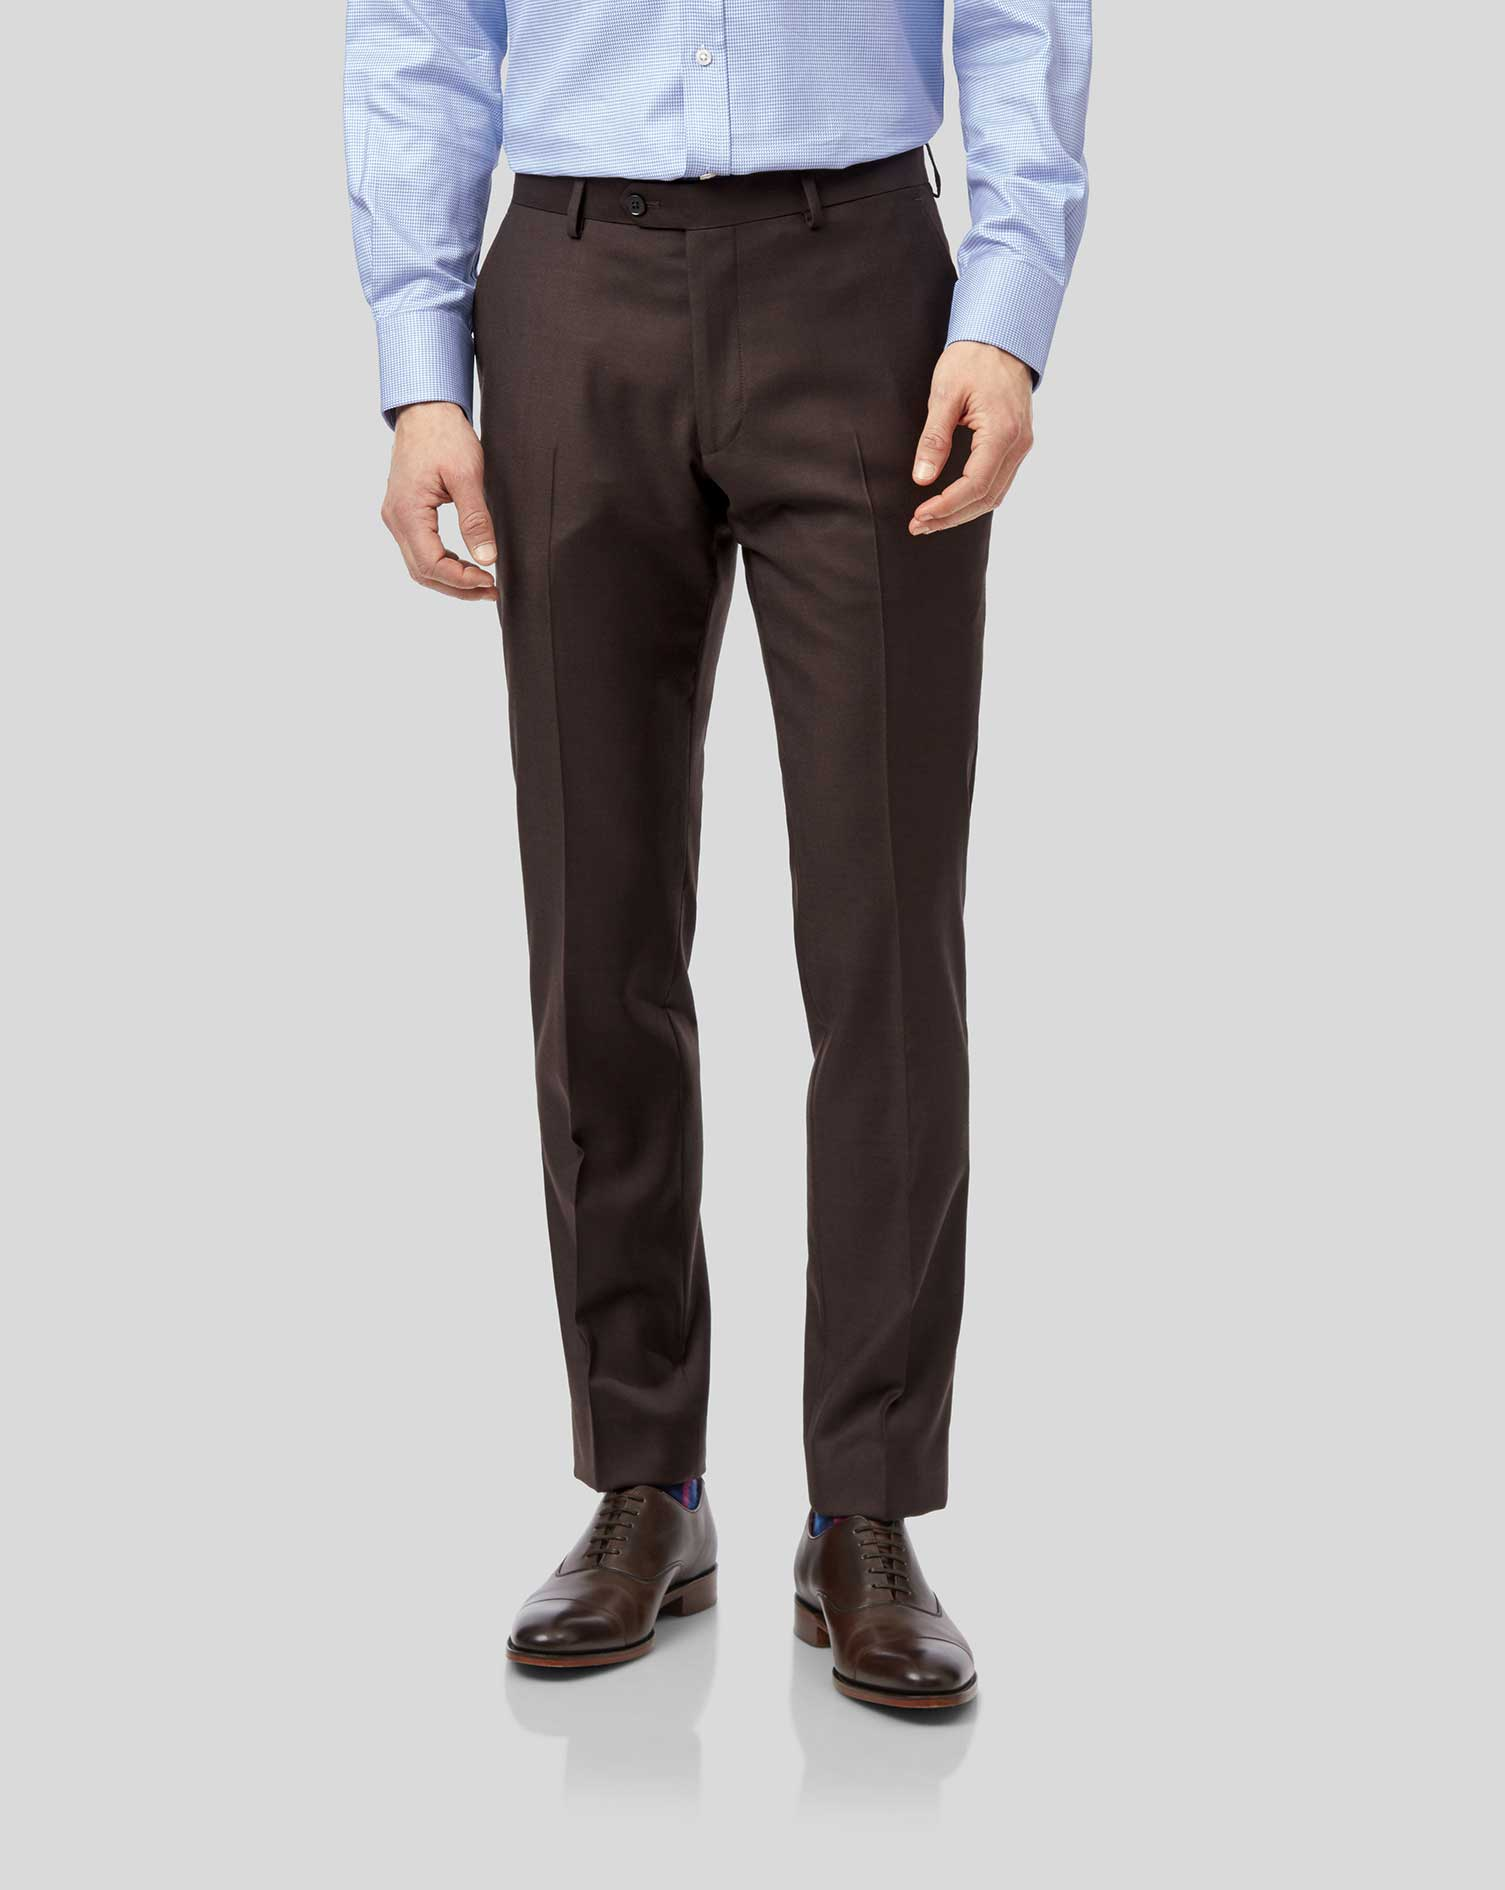 Wool Brown Slim Fit Twill Business Suit Trousers